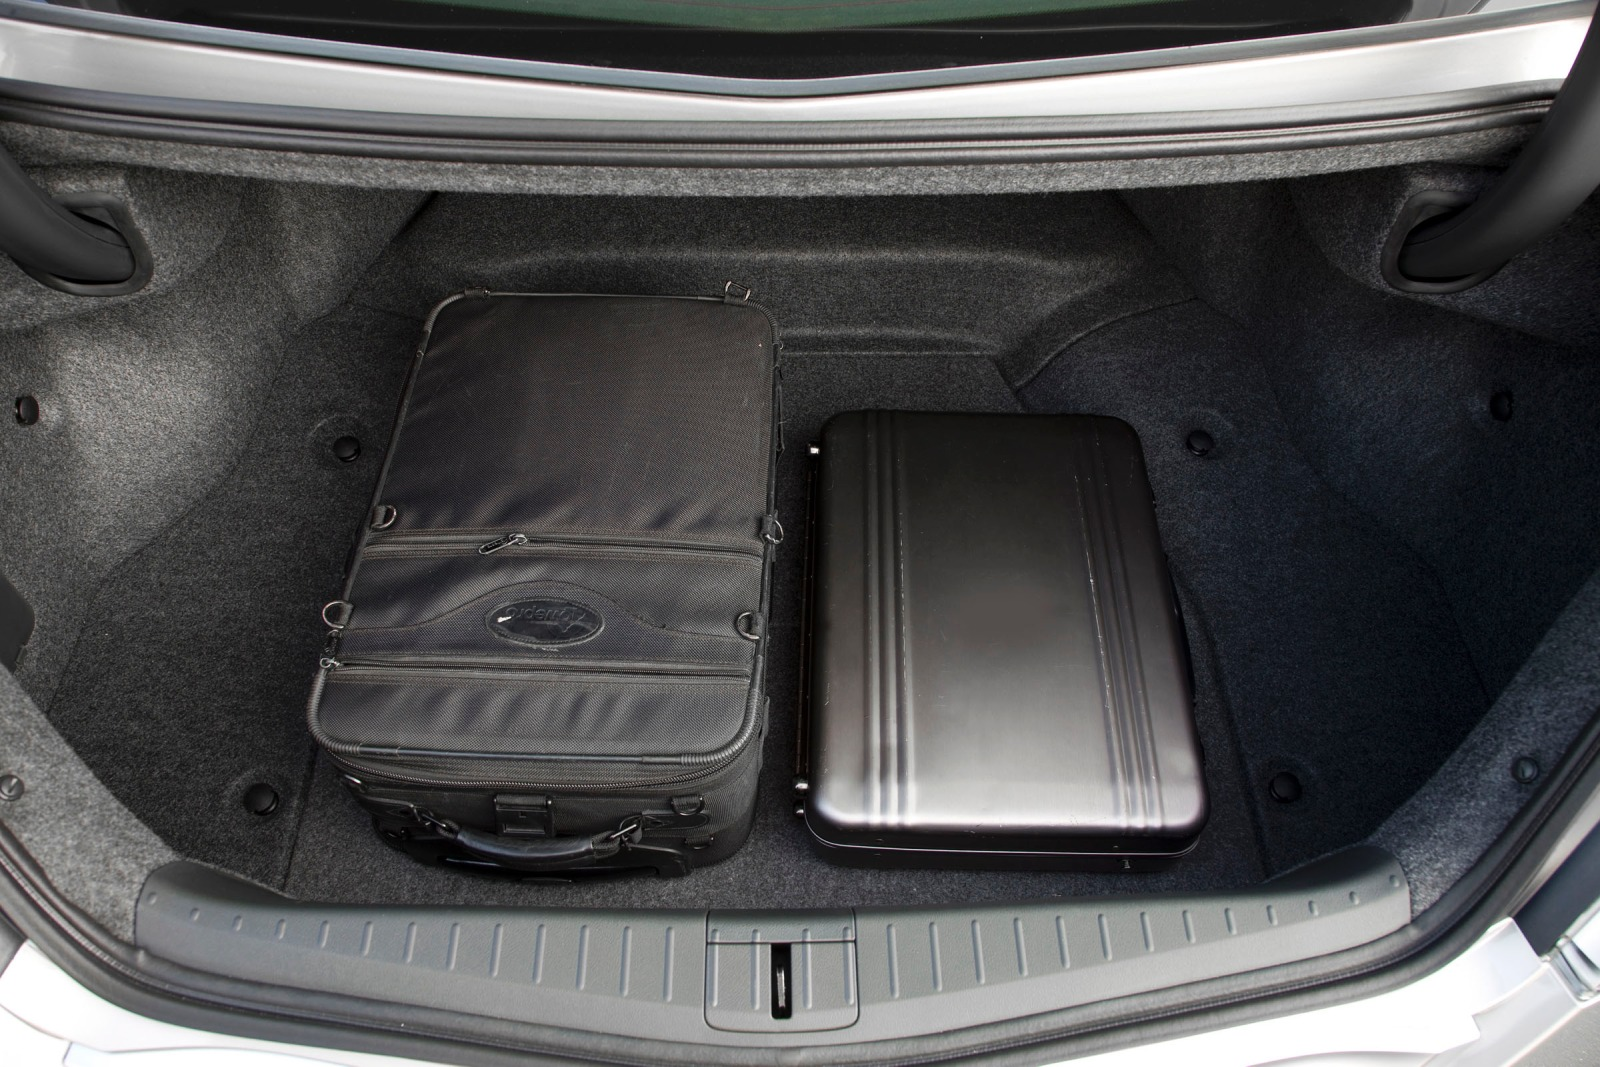 2011 Acura TL Sedan Cargo interior #1